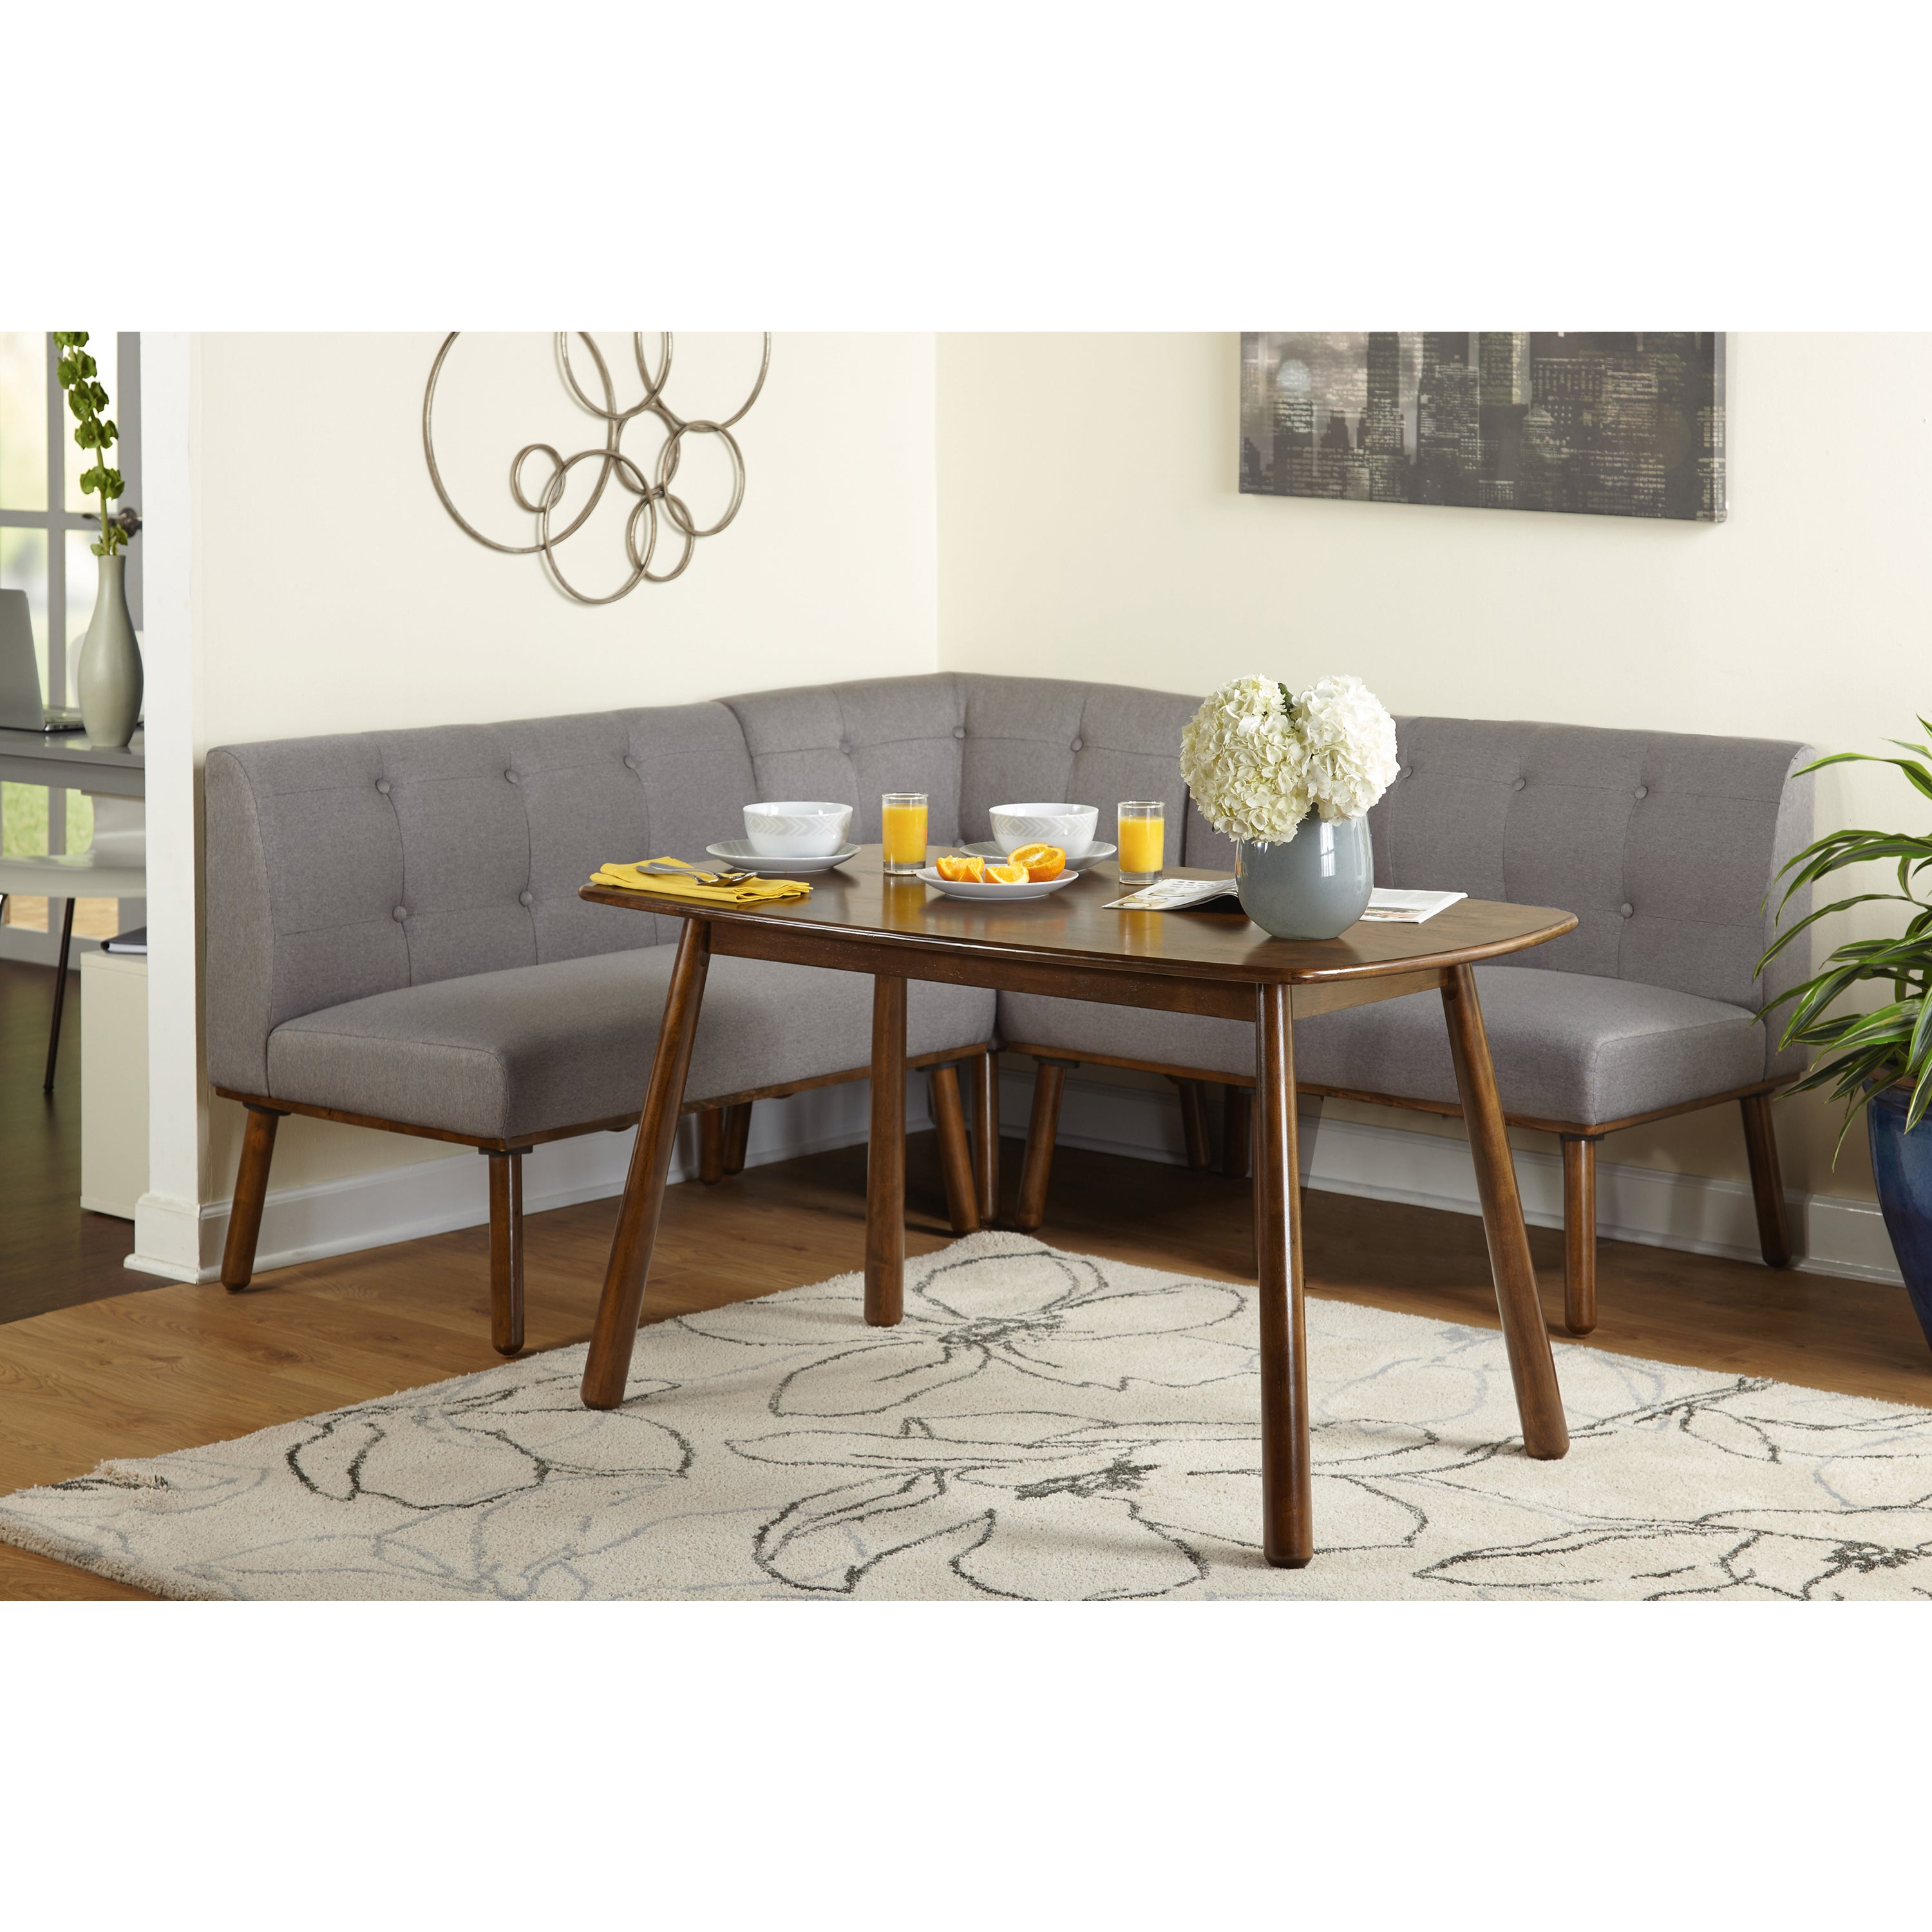 Simple Living 4 Piece Playmate Nook Dining Set Within Most Popular Maloney 3 Piece Breakfast Nook Dining Sets (Image 19 of 20)